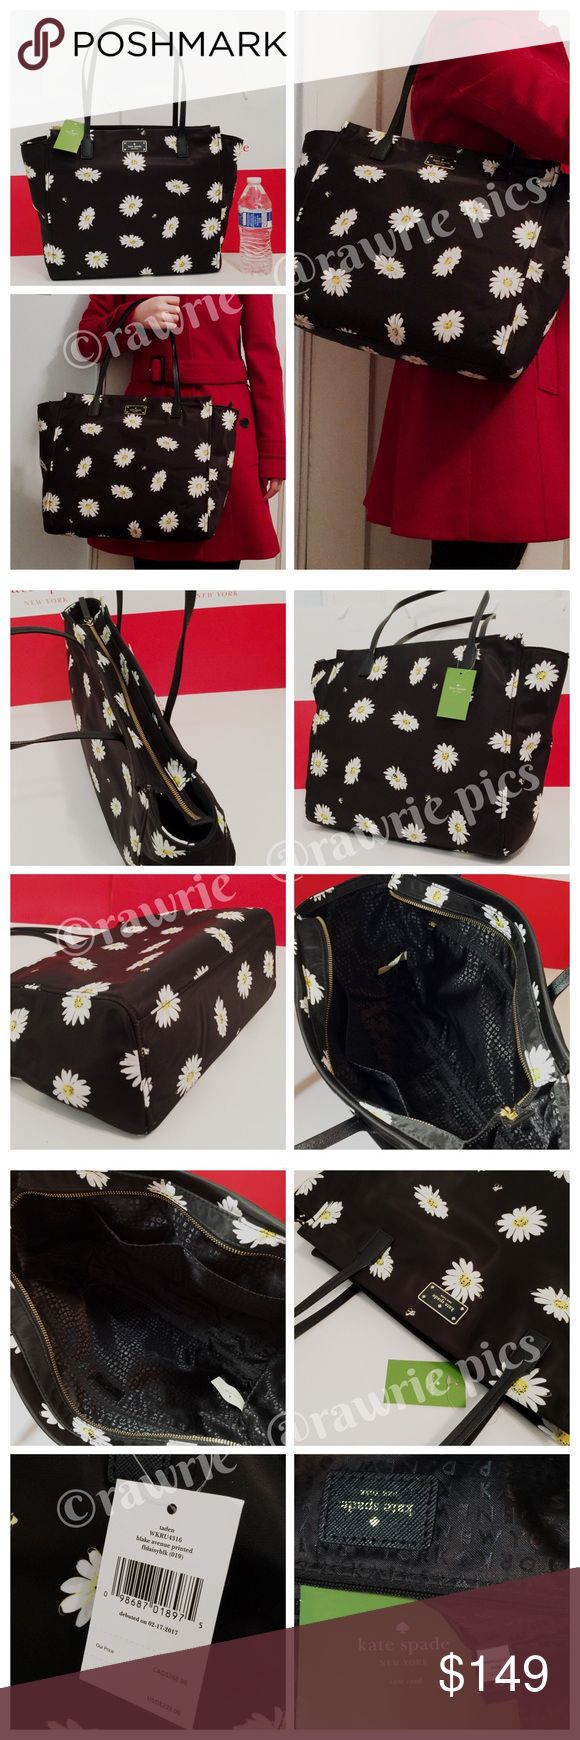 """New Kate Spade black daisy bees large nylon tote 100% authentic. Daisy and bees print on black nylon with vinyl trim. Zip top closure and fabric lining. Inside zip and slip pockets. Handle drops 8.5"""". Measures 13""""-18"""" (L) x 12"""" (H) x 5.5"""" (W). Brand new with tag. Comes from a pet and smoke free home. kate spade Bags Totes"""